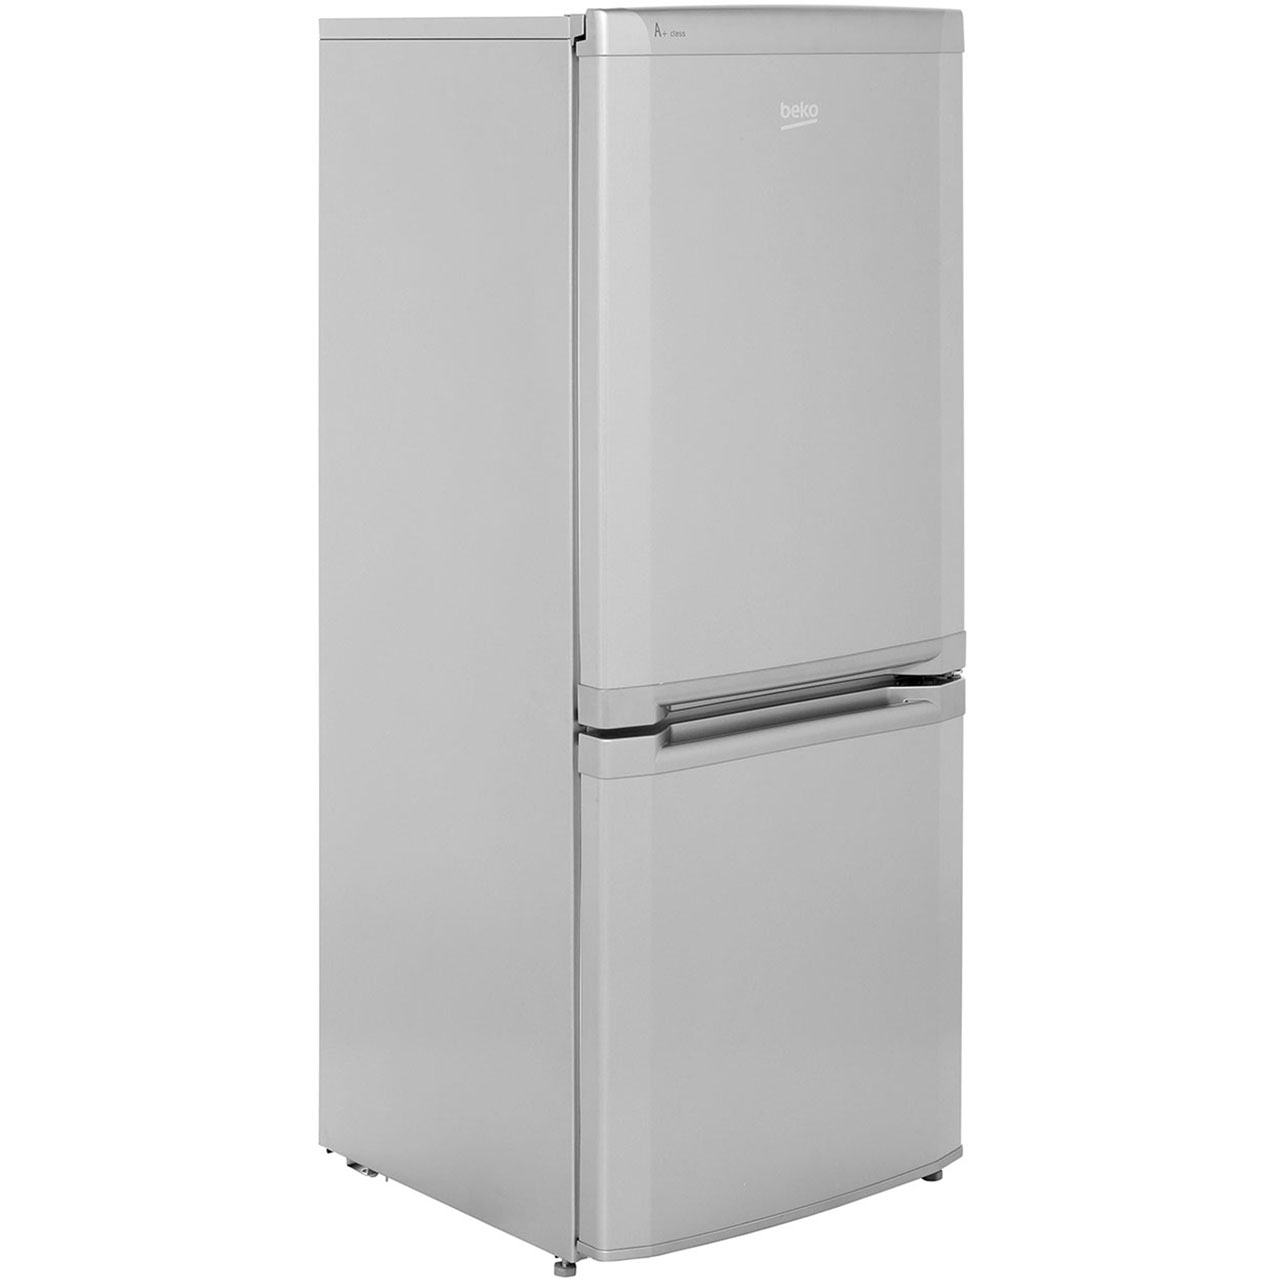 Beko CS5342APS 60/40 Fridge Freezer - Silver